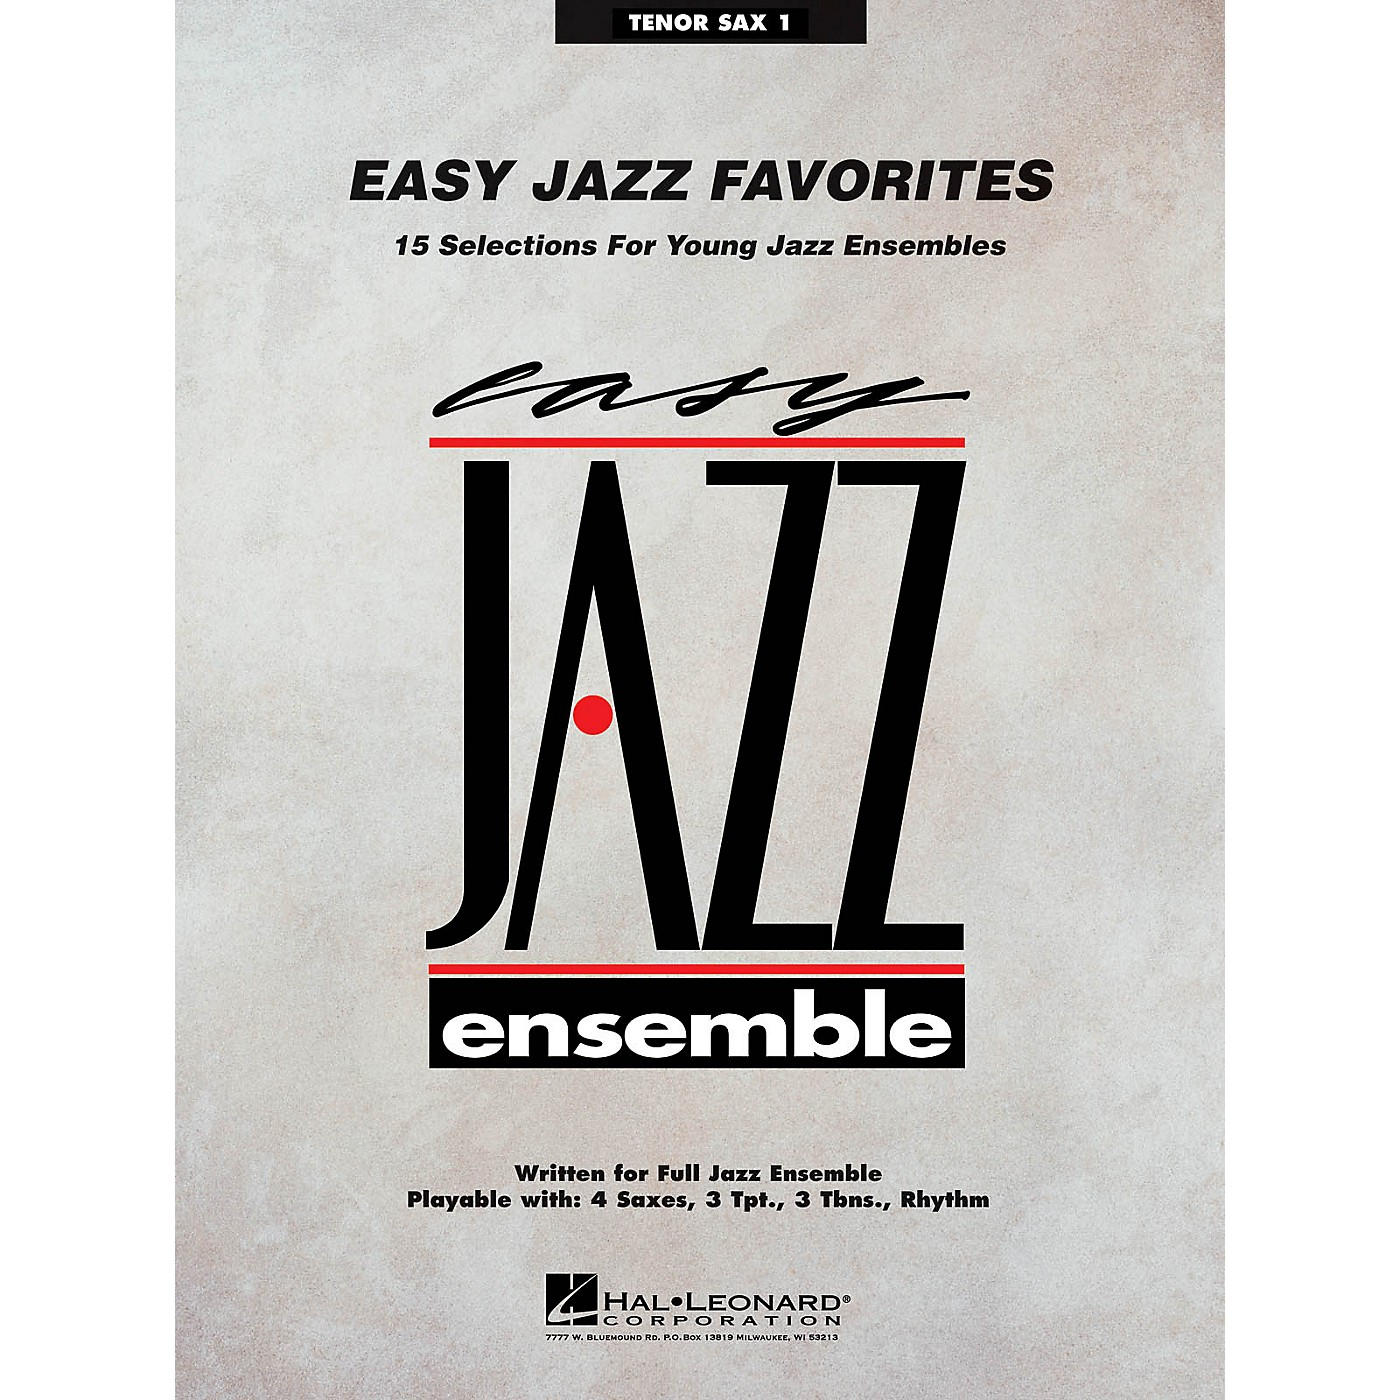 Hal Leonard Easy Jazz Favorites - Tenor Sax 1 Jazz Band Level 2 Composed by Various thumbnail